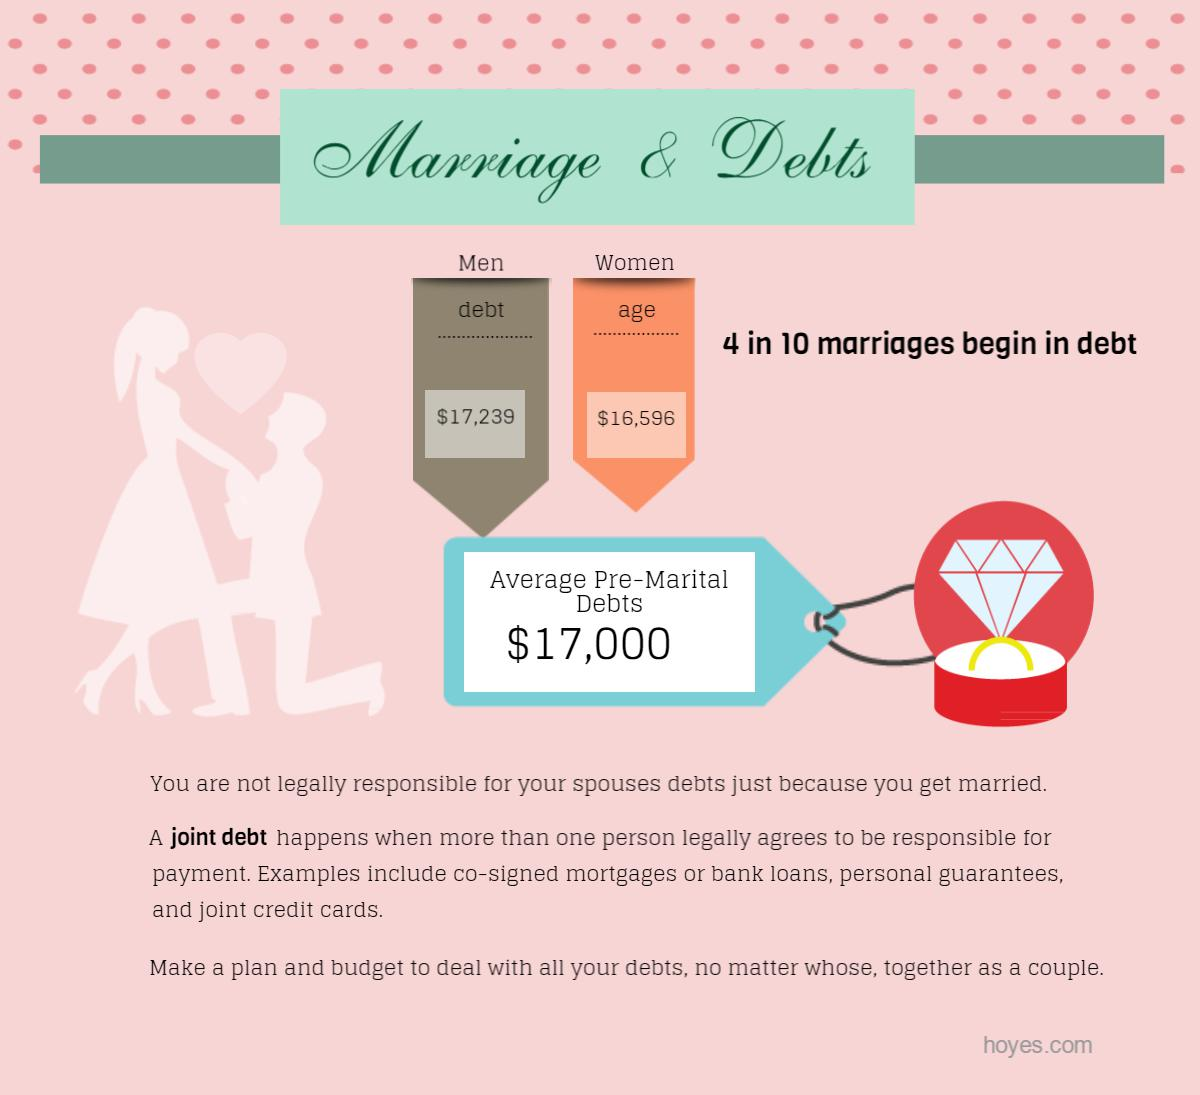 reduce debt marriage